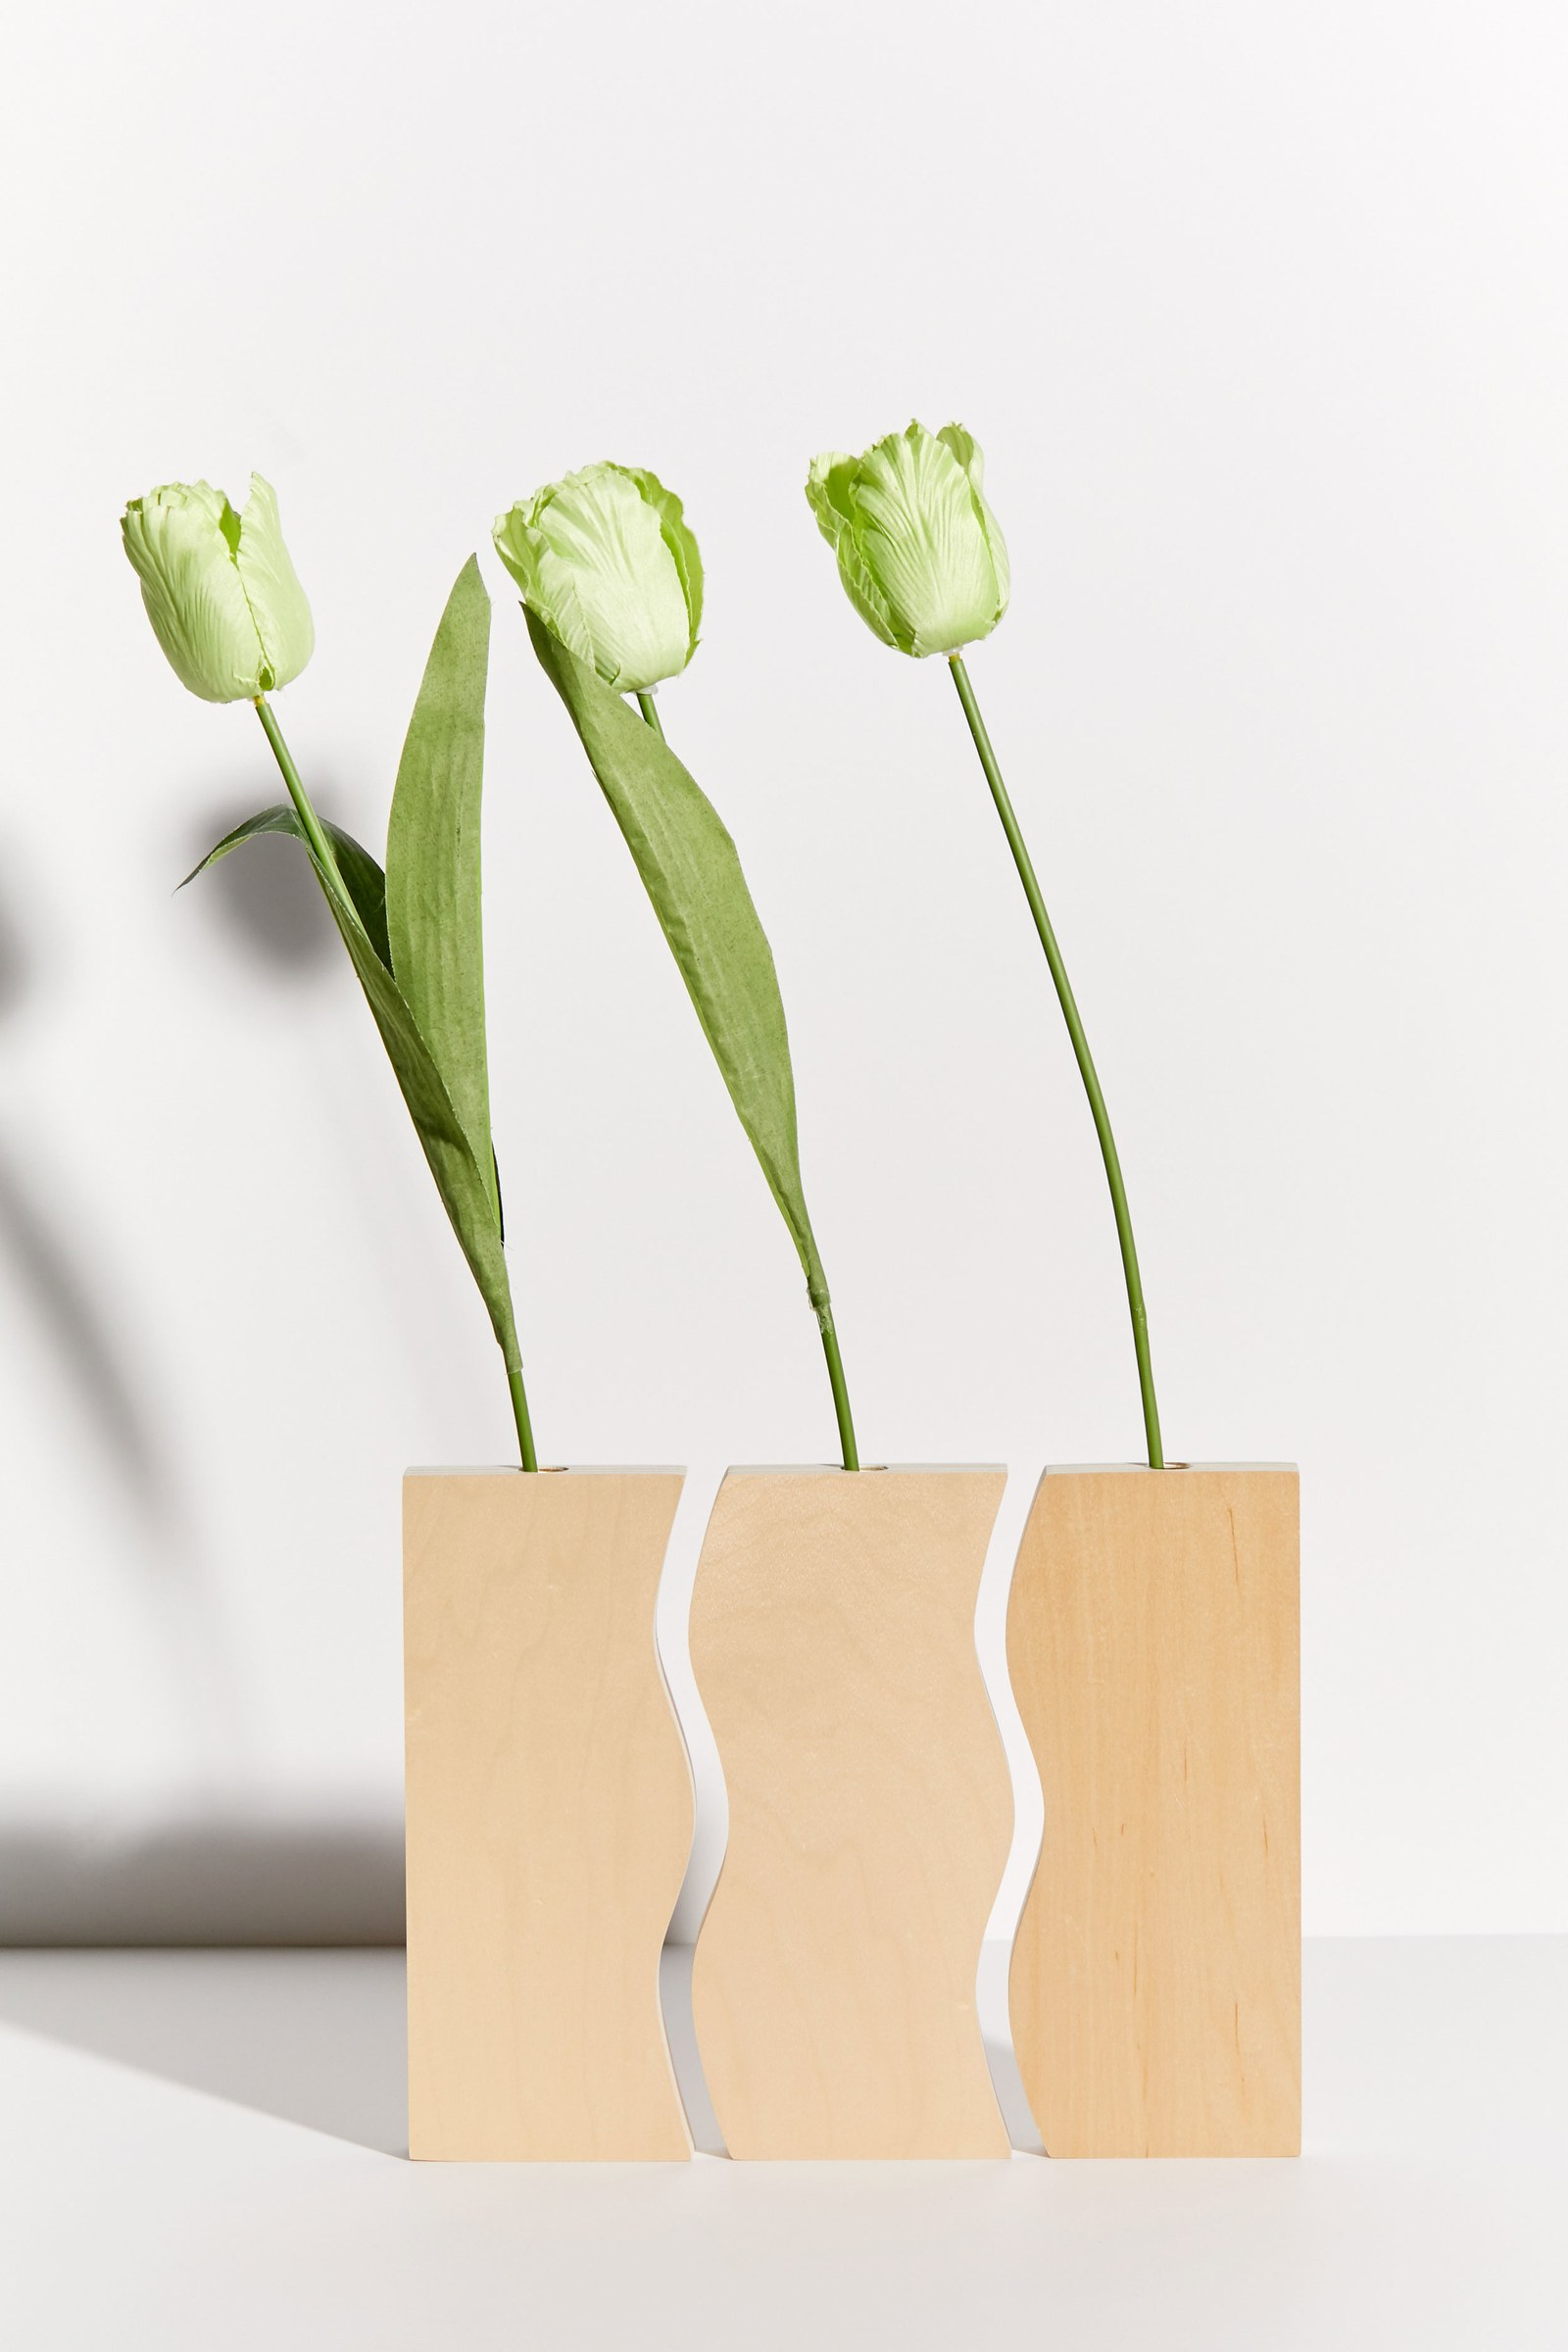 Wooden vase set on Urban Outfitters x Clever